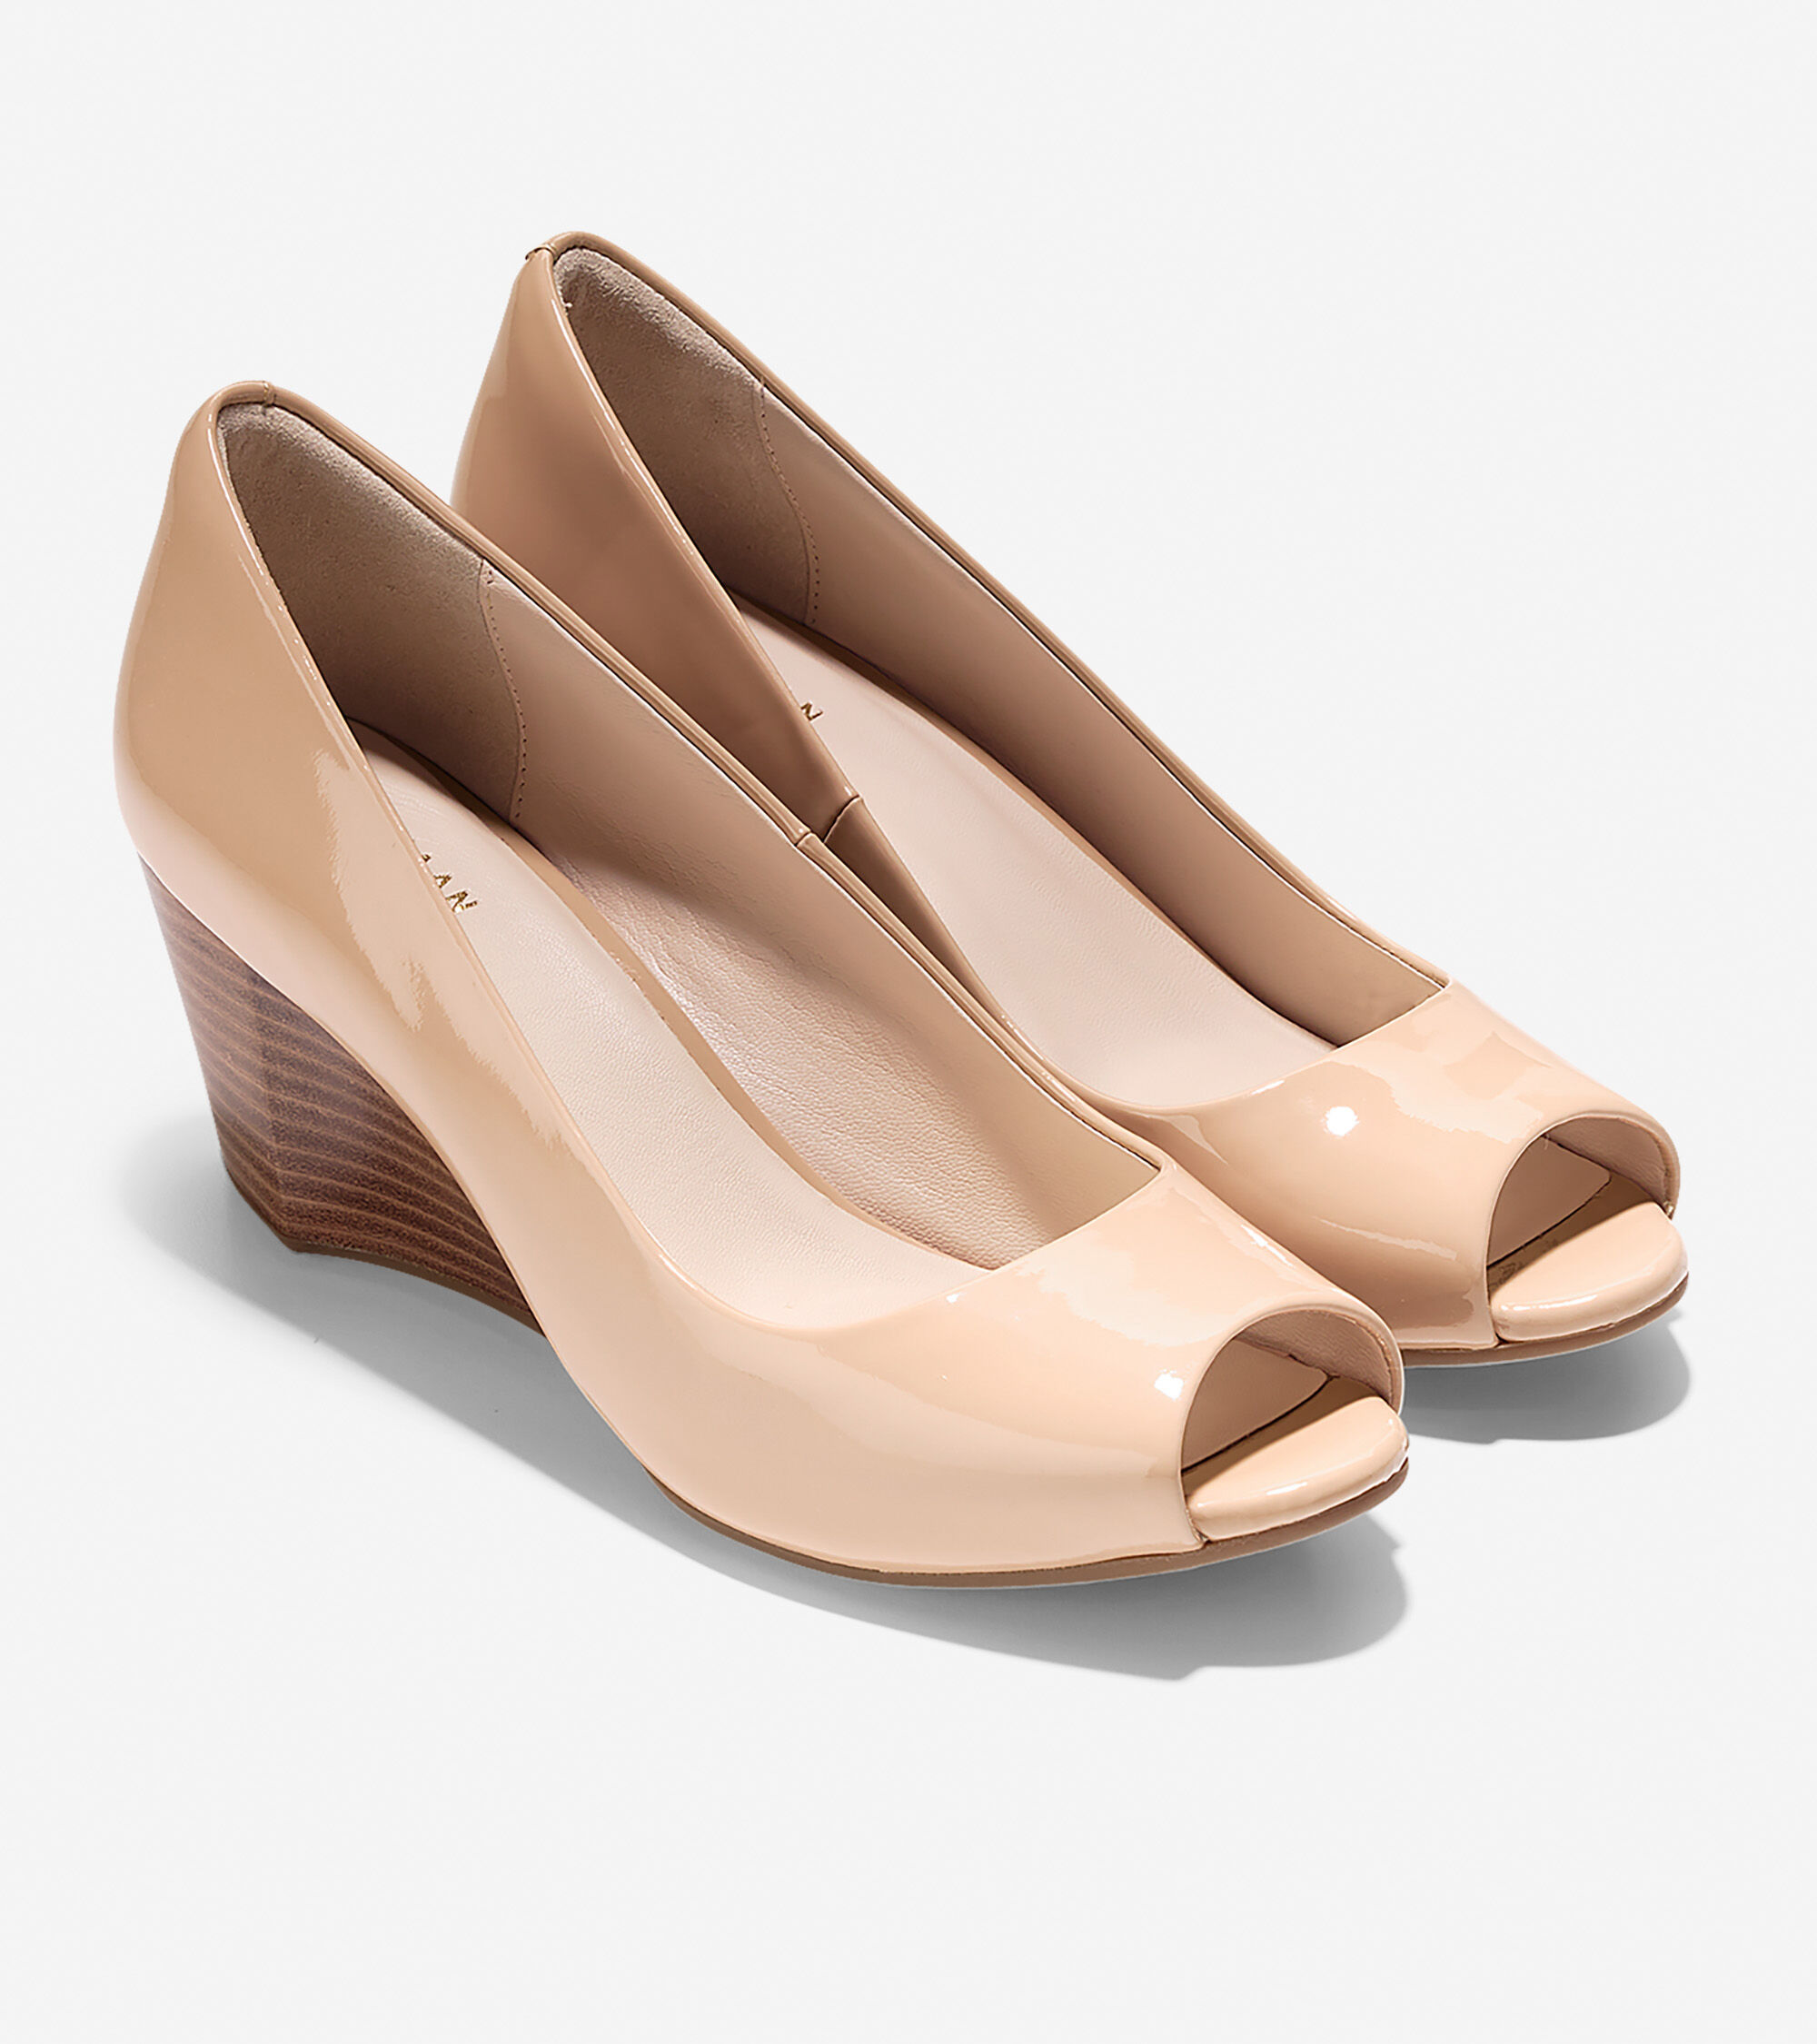 e63a7d58c02 Women s Sadie Open Toe Wedges 65mm in Nude